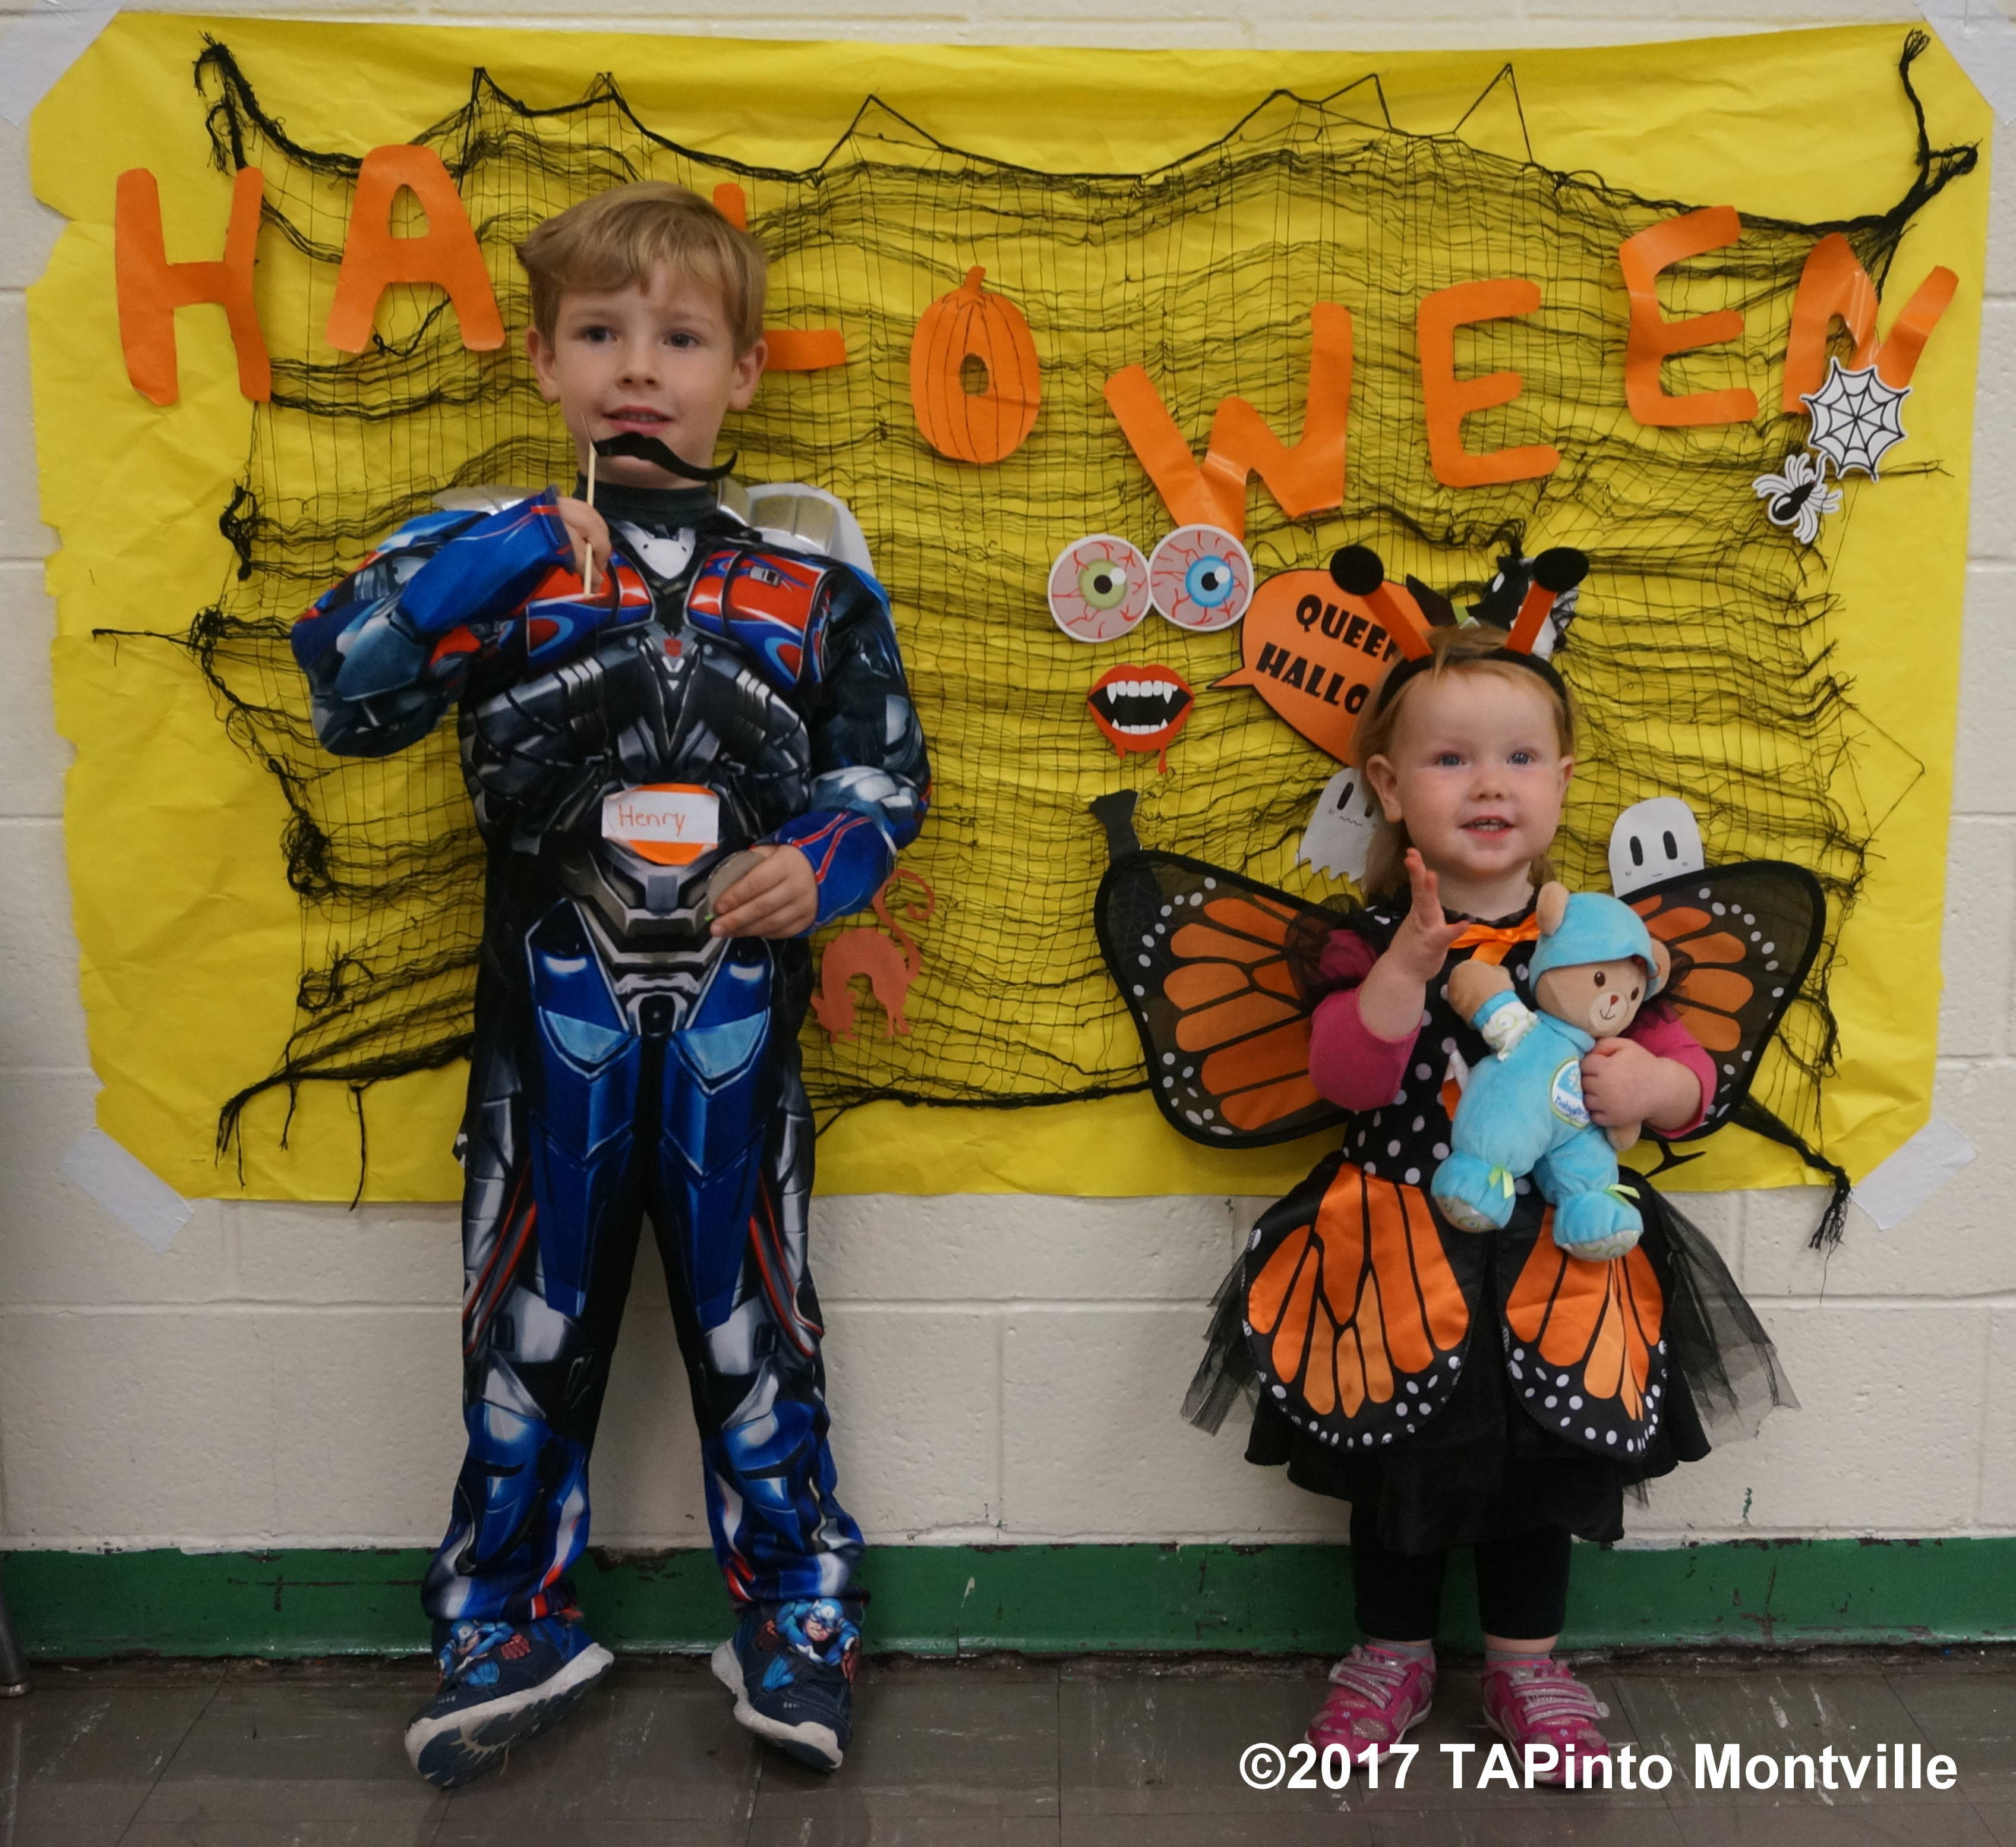 a1a5ecccf7ae08756426_a_Henry_and_Parker_Truglio_pose_at_the_Key_Club_Monster_Bash__2017_TAPinto_Montville.JPG